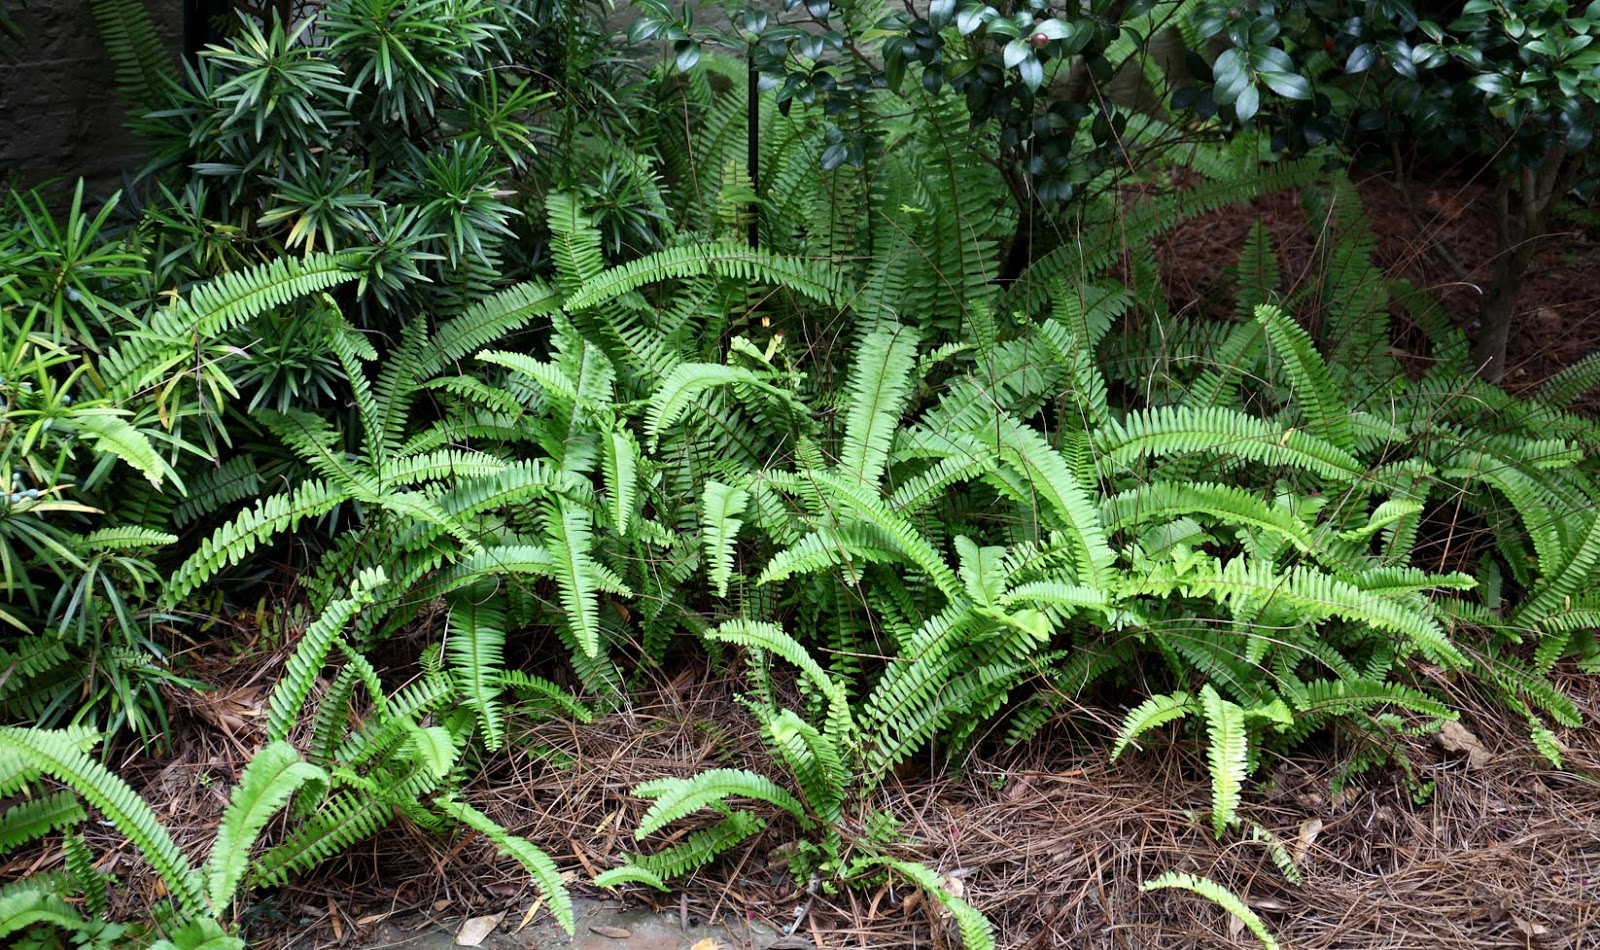 Landscaping With Ferns : Southern lagniappe ferns a cool landscaping plant